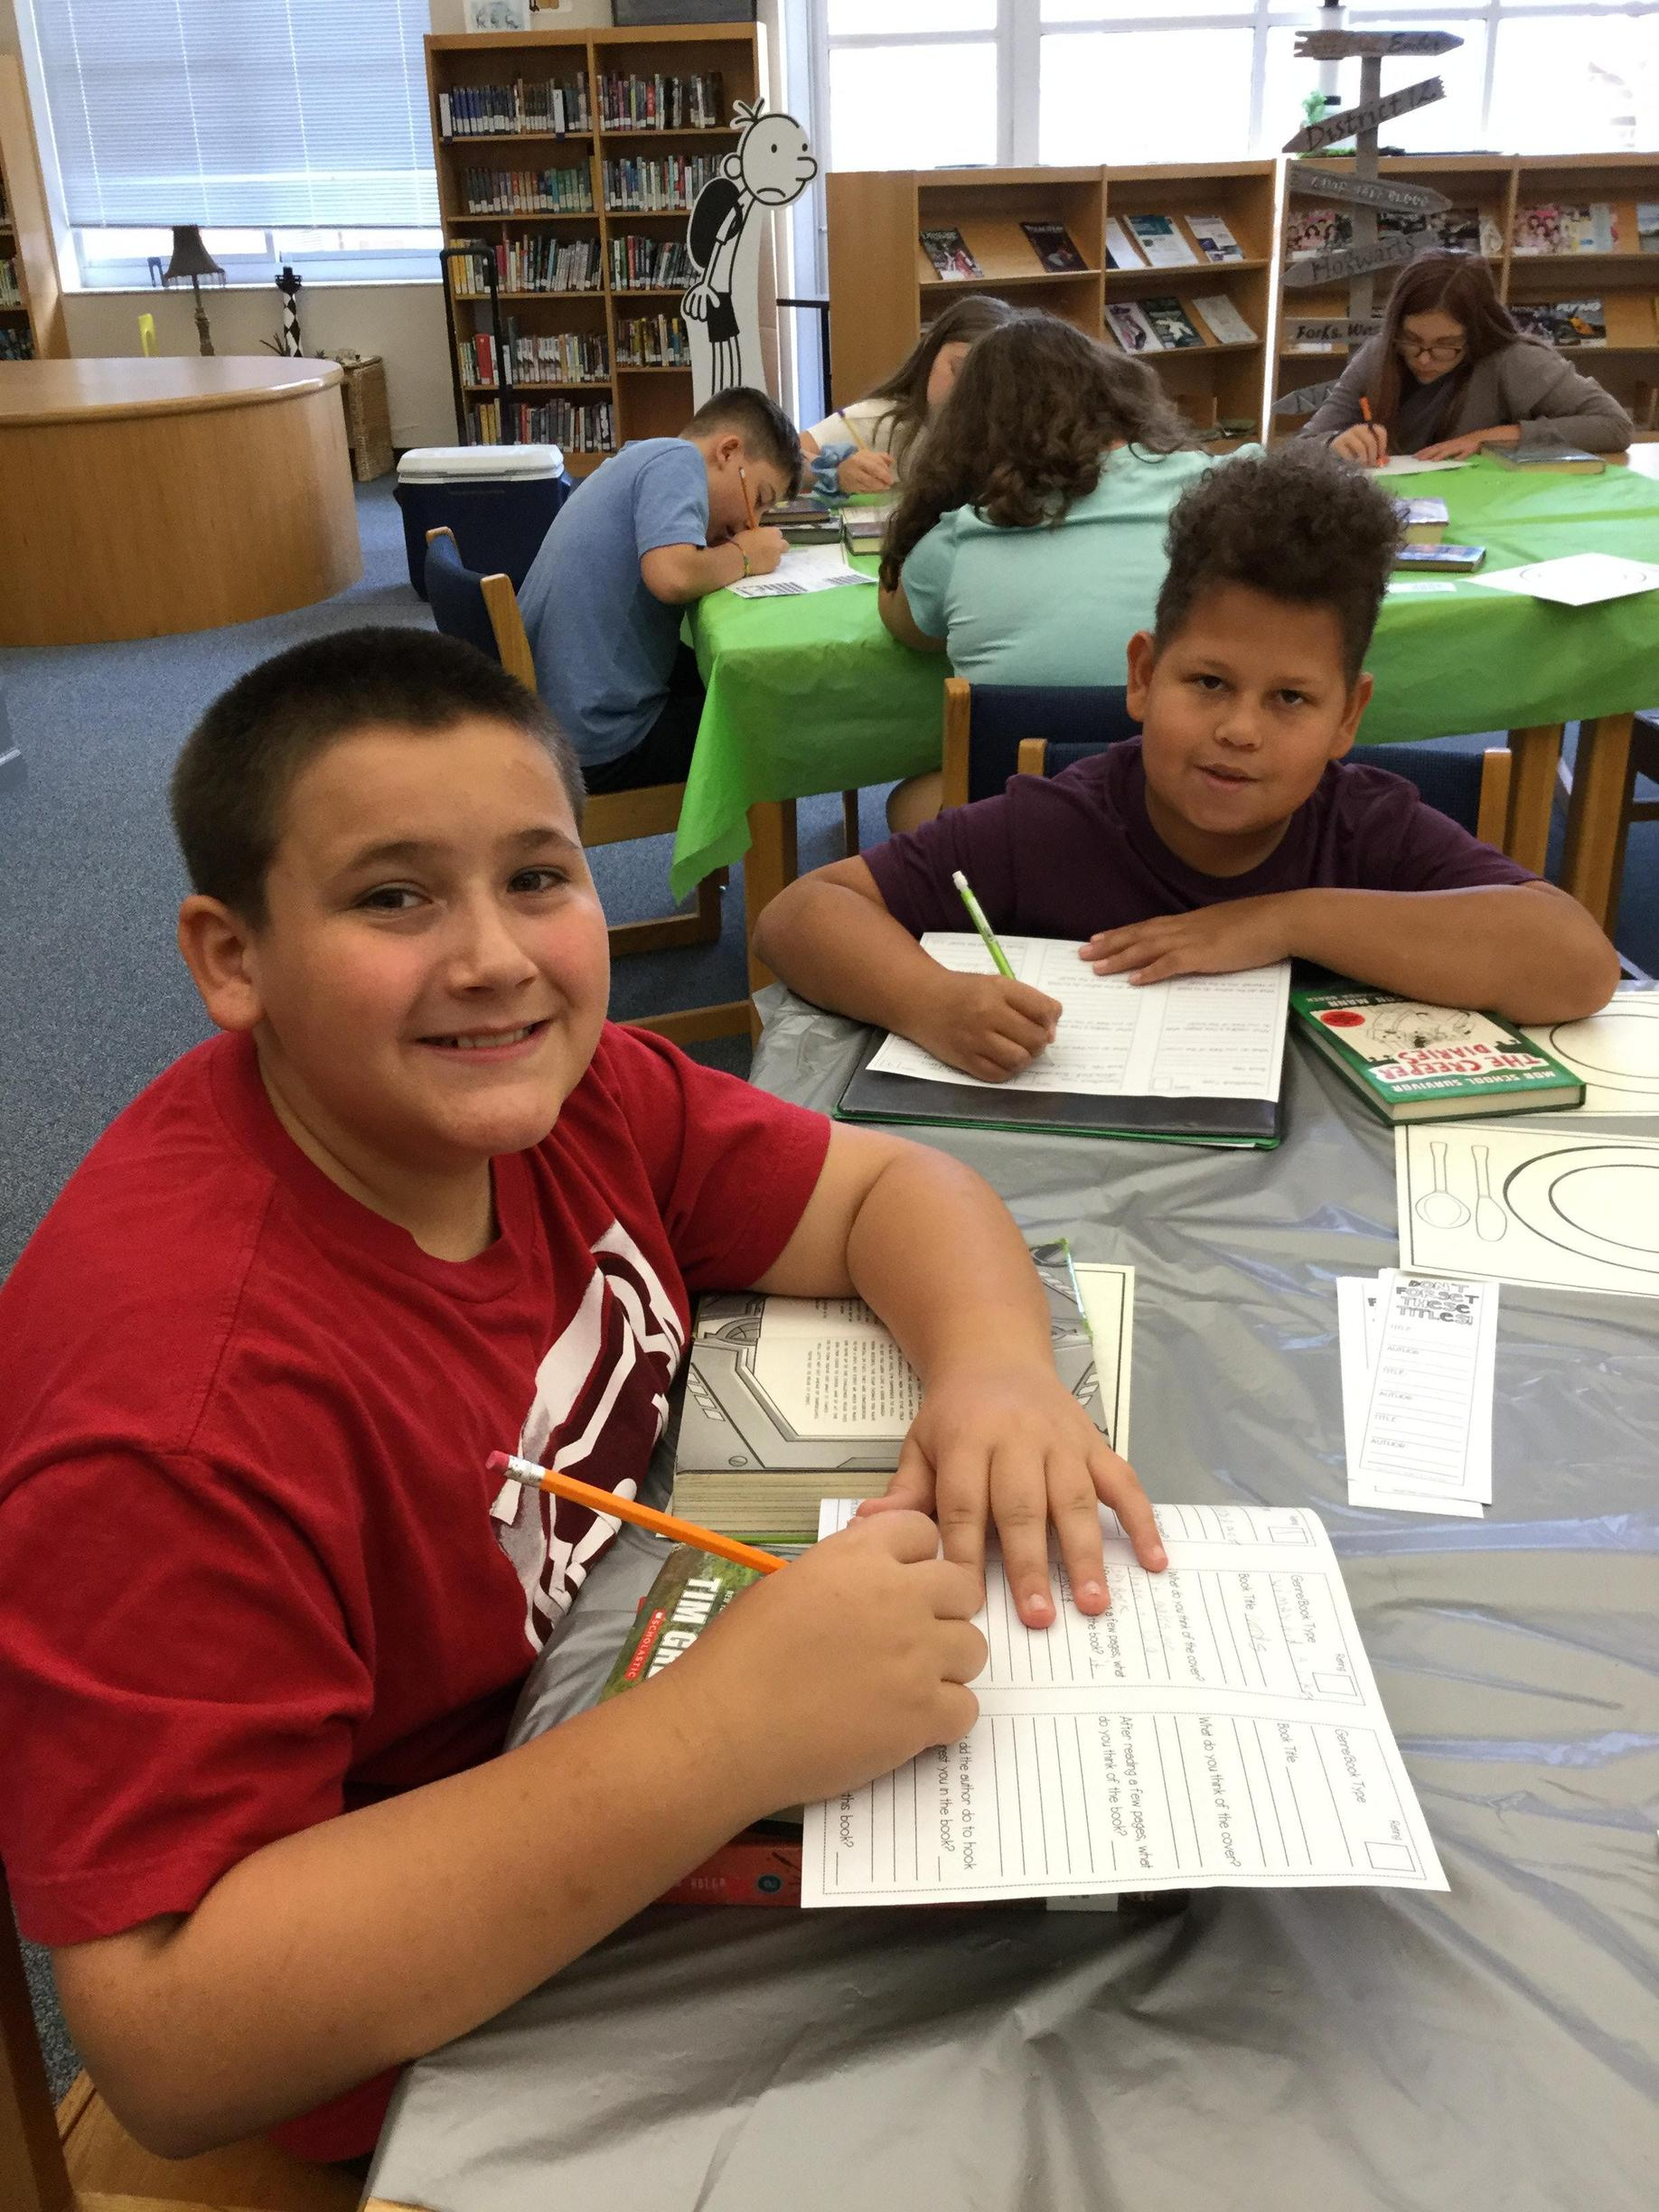 Students writing about a book